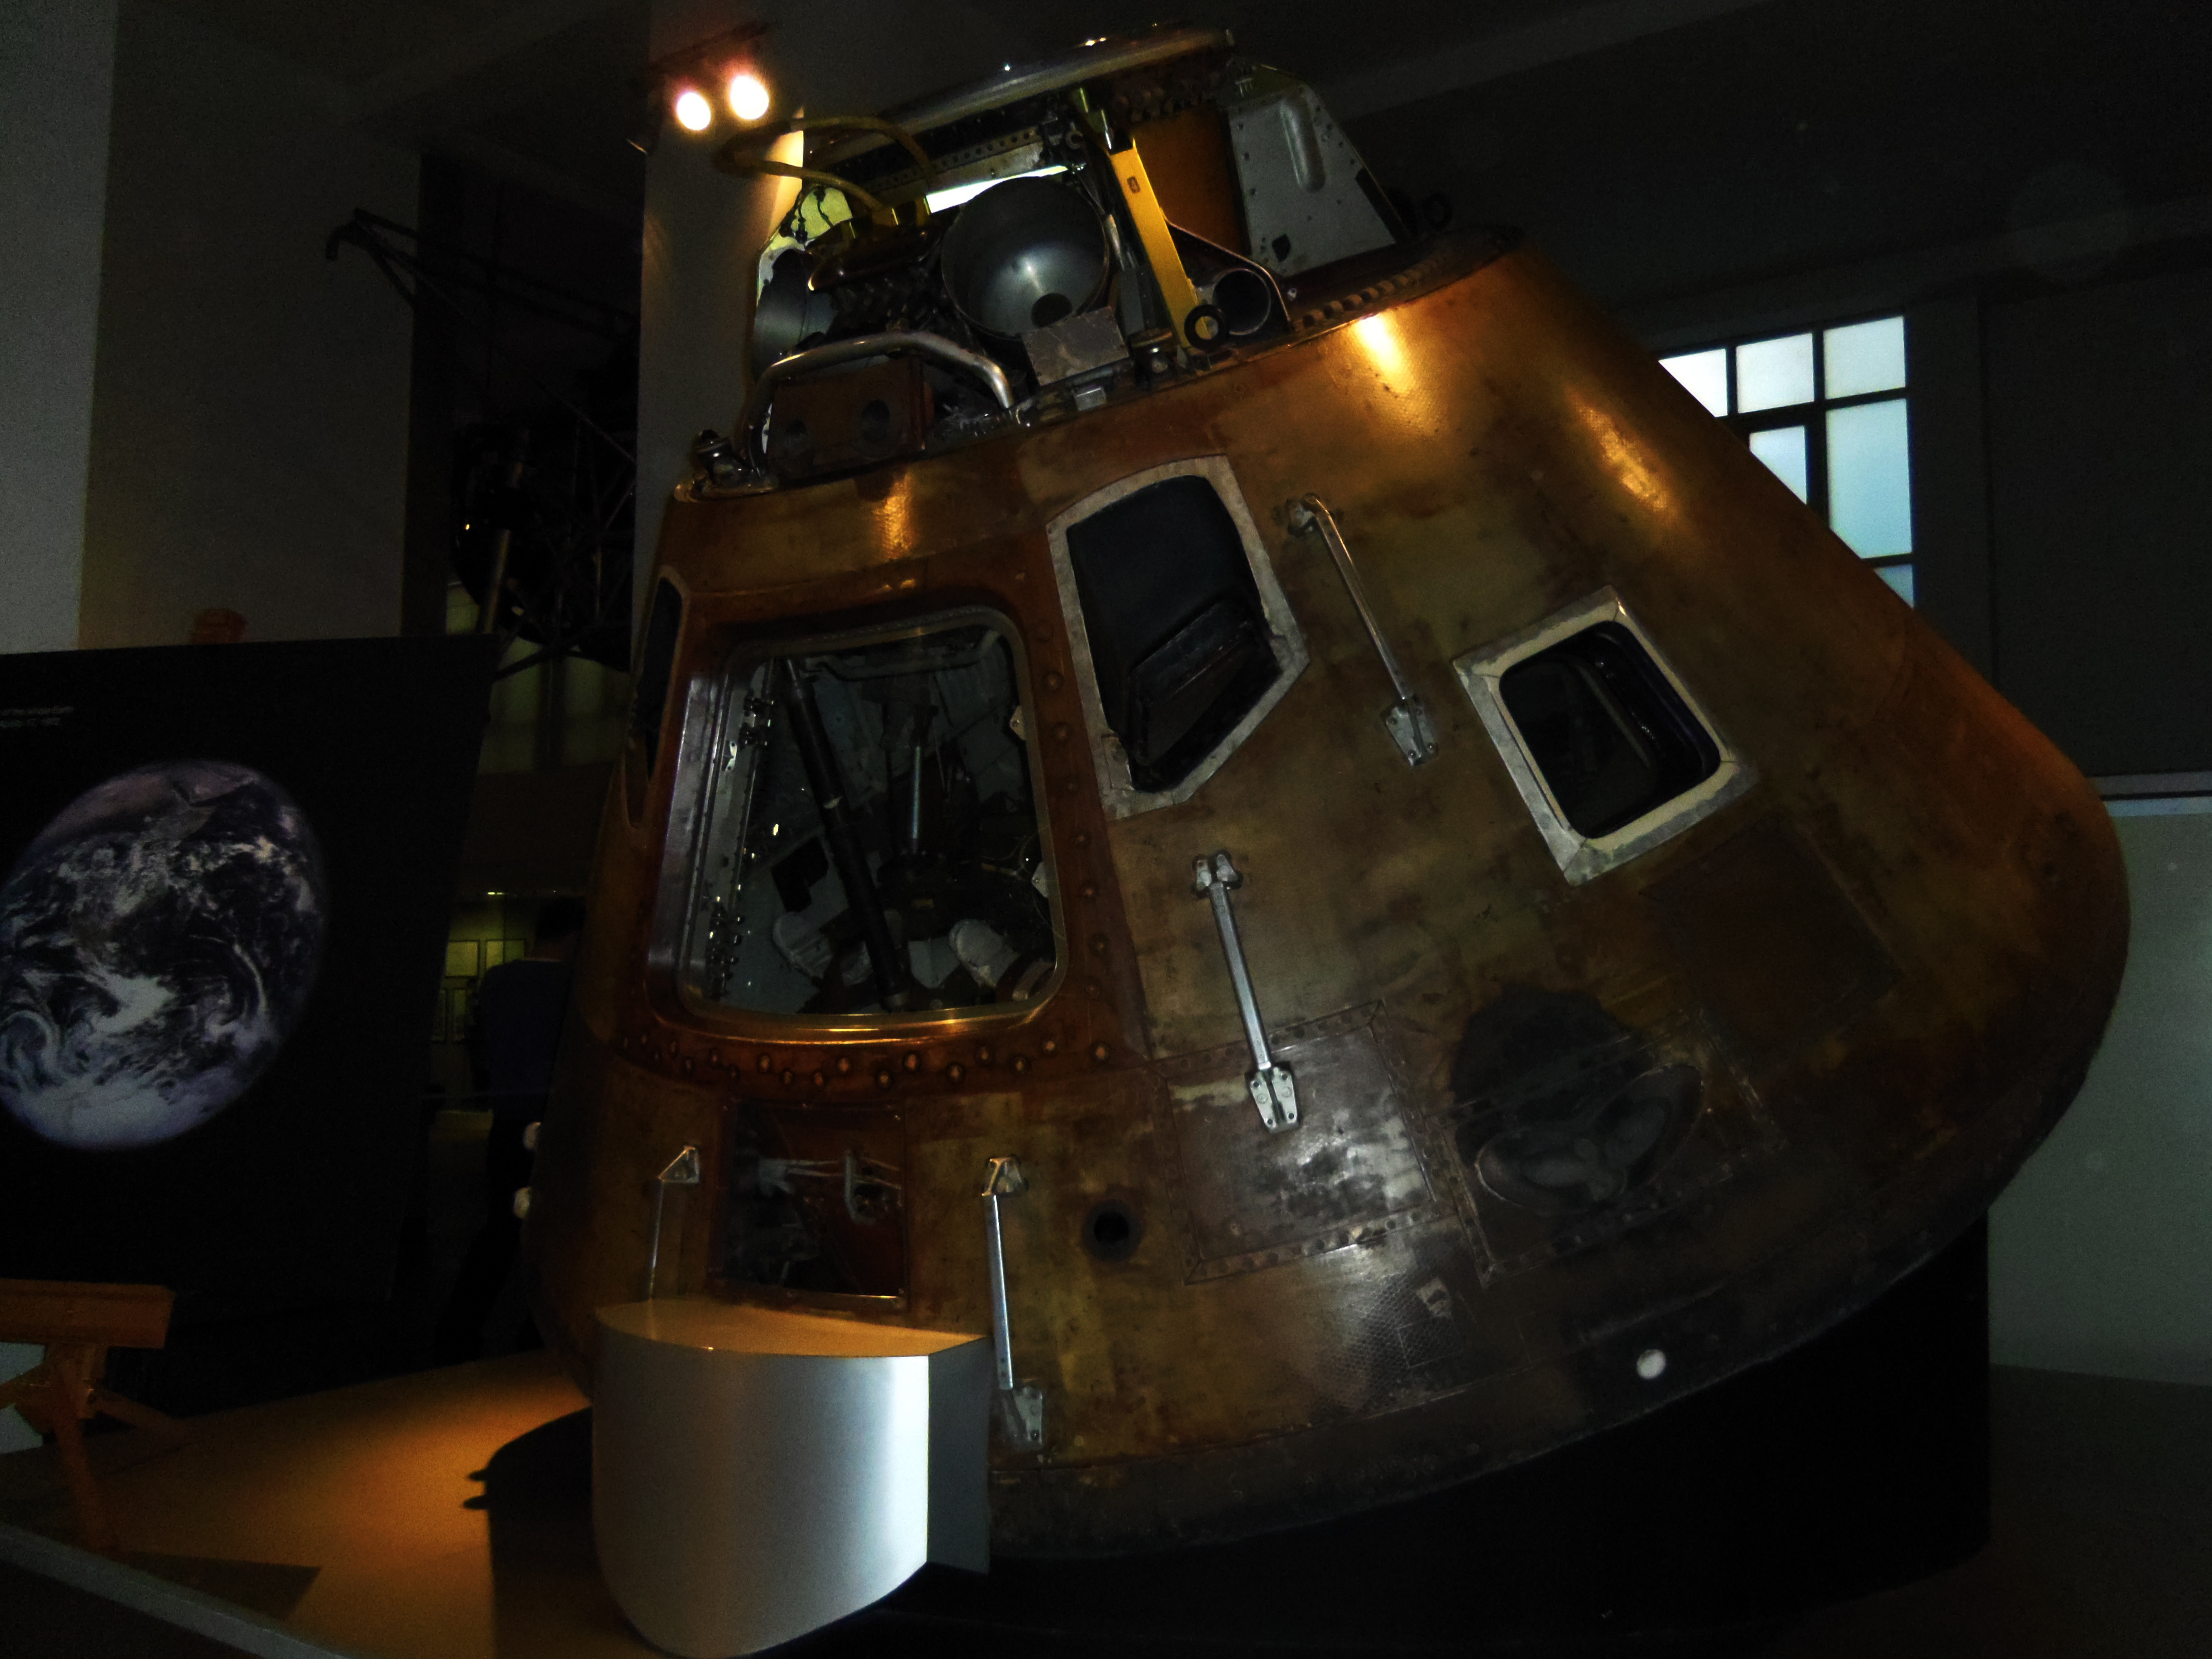 Apollo 10 command module by StevenARTify on deviantART